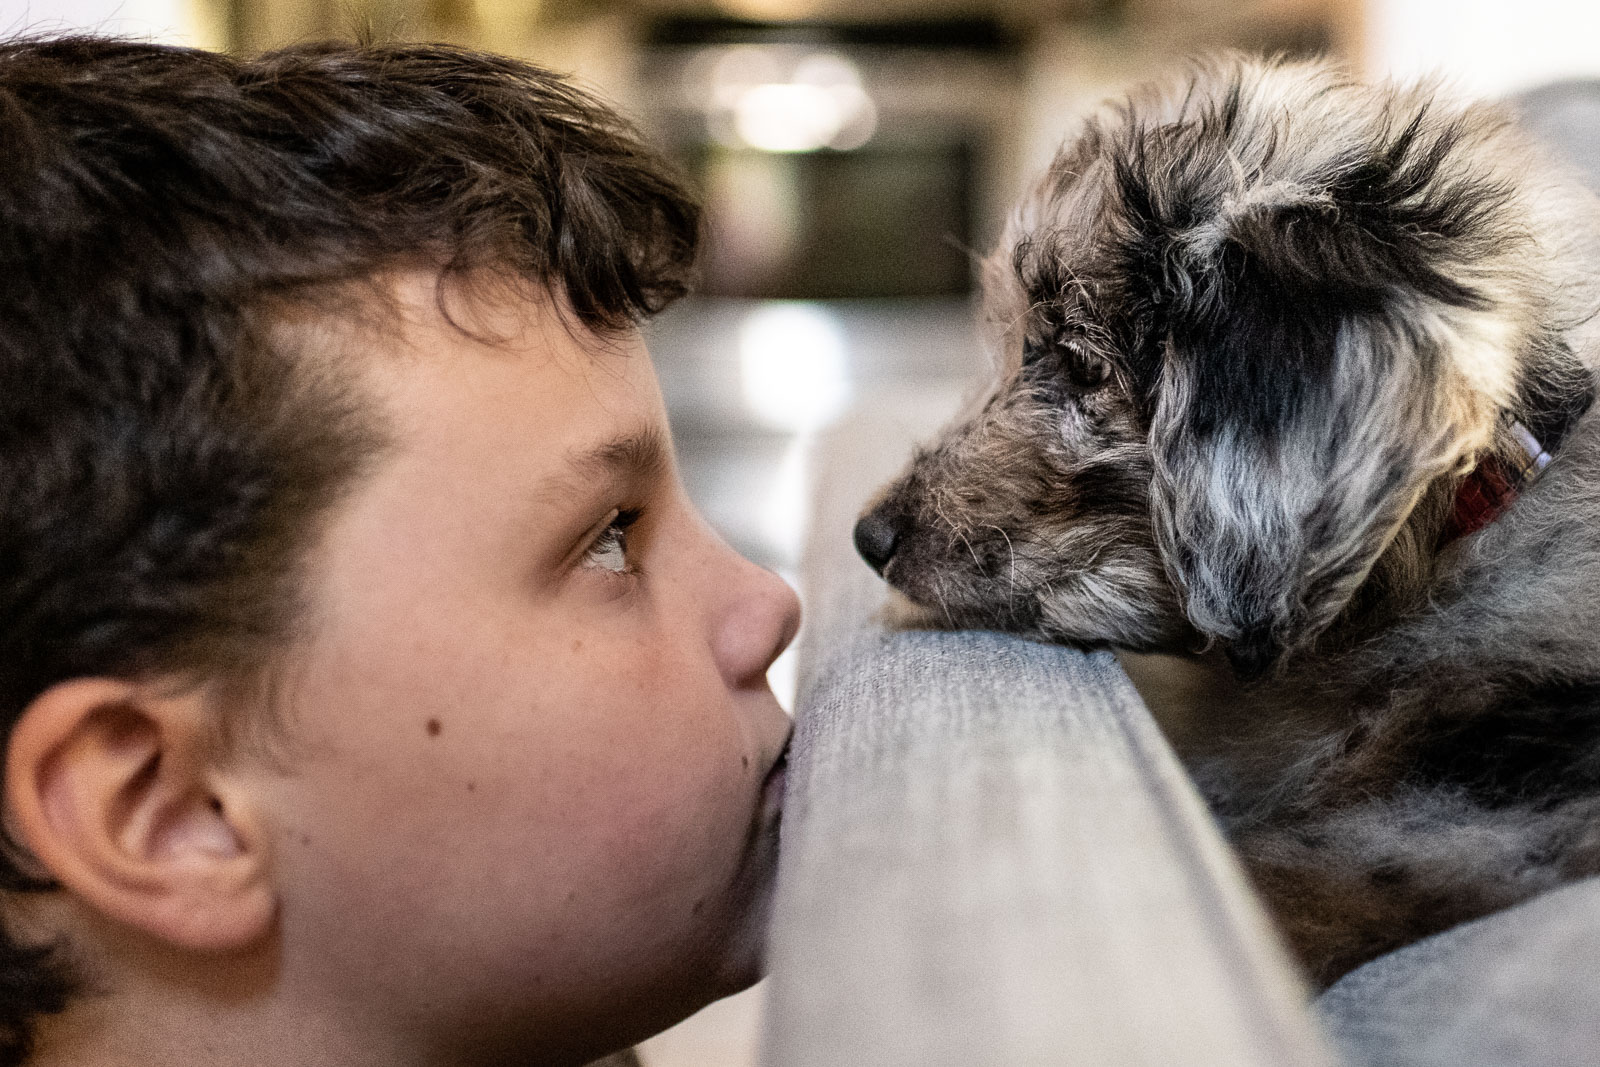 Boy stares at puppy who stares back at him in Sausalito, CA